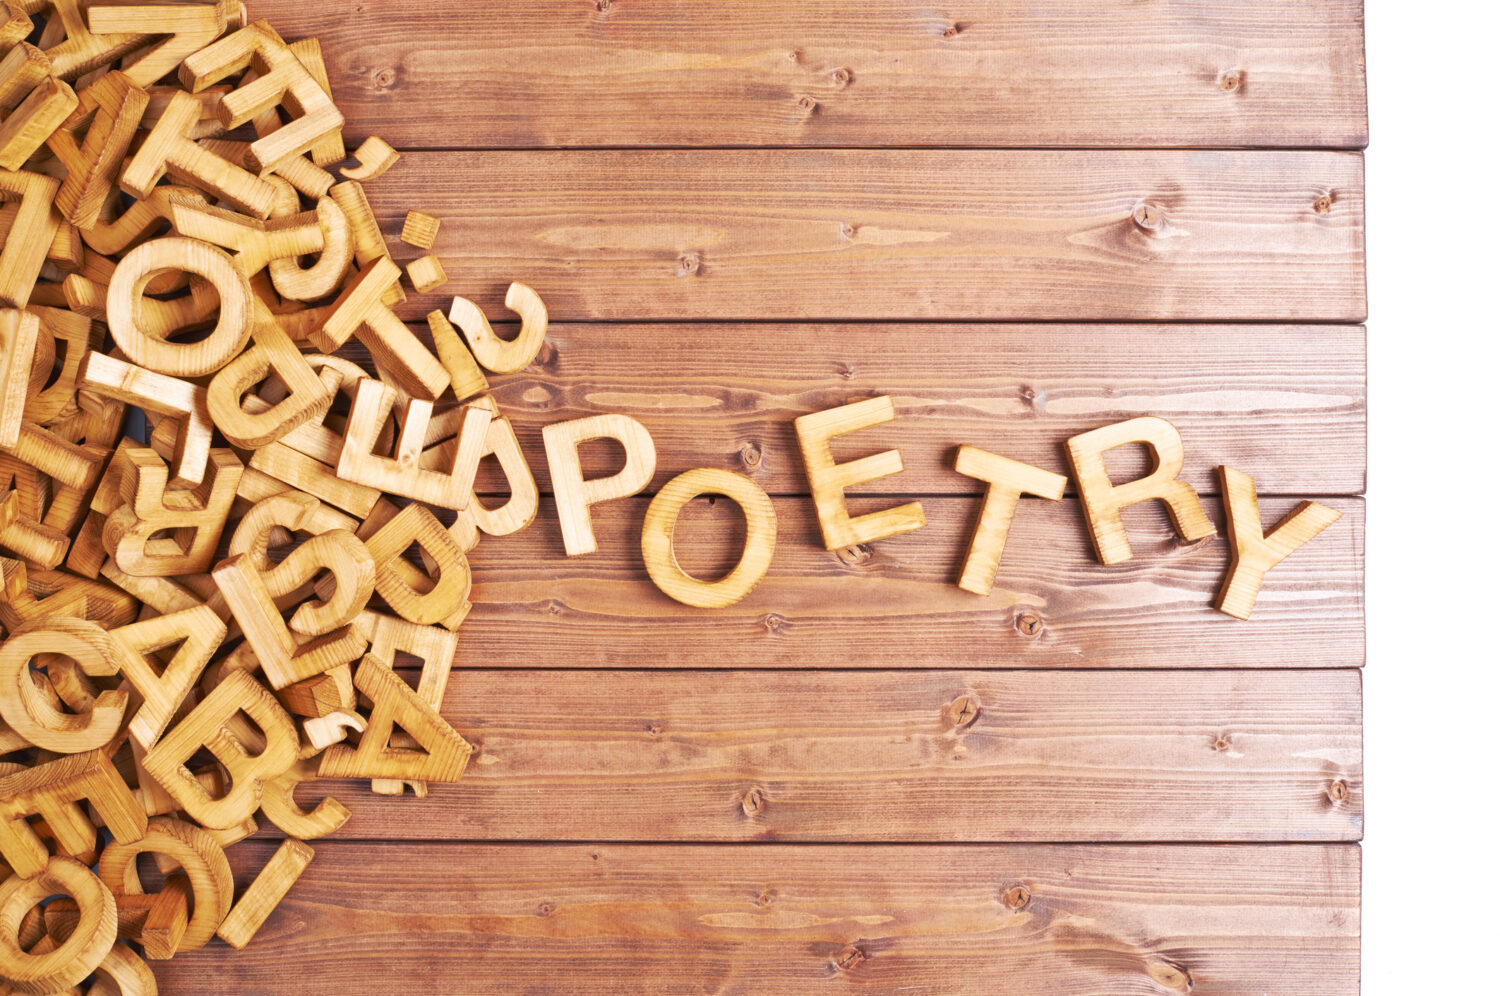 Wooden Letters Spelling Poetry